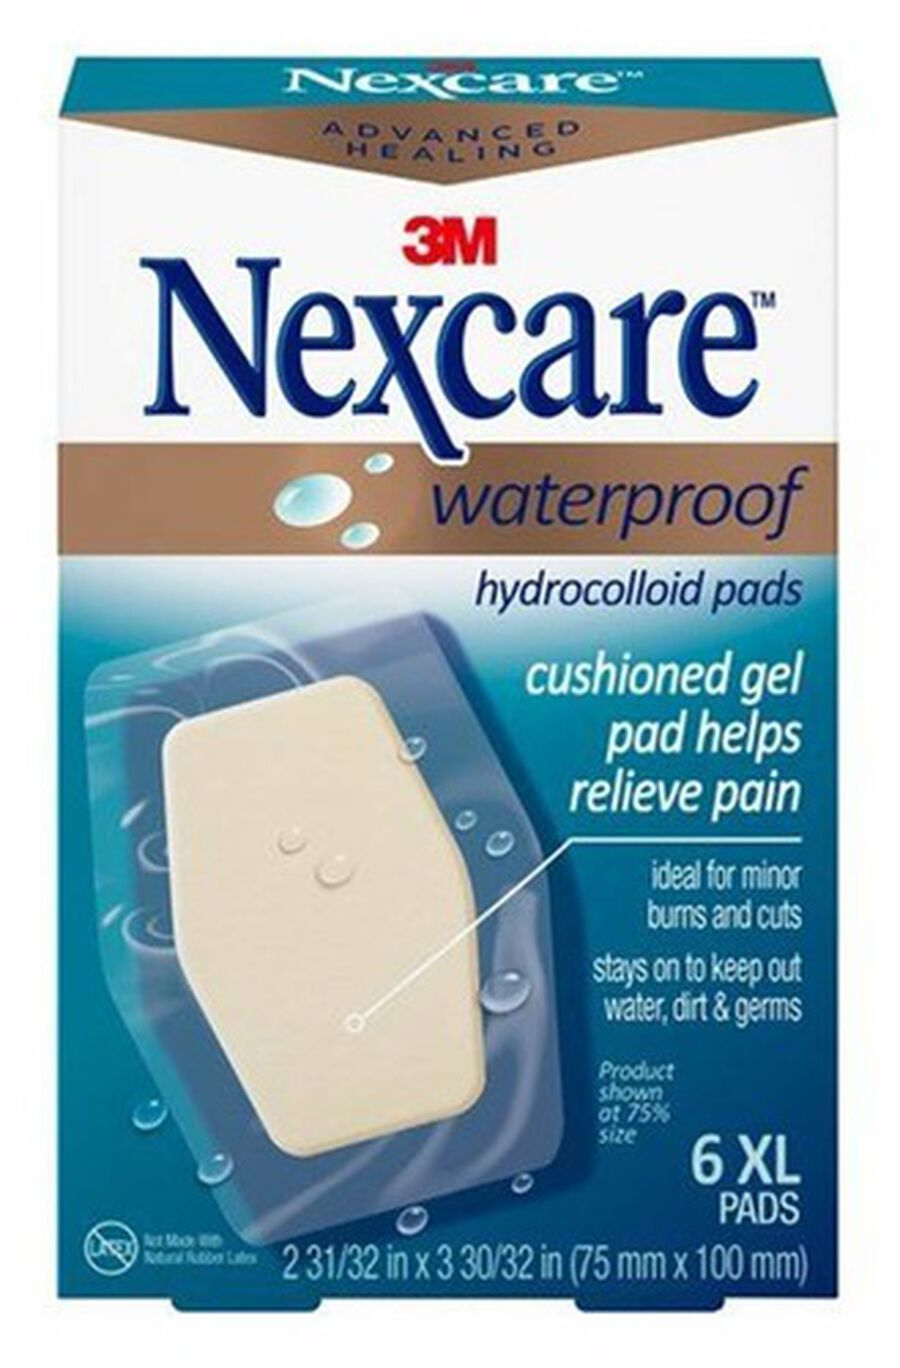 Nexcare Advanced Healing Waterproof Hydrocolloid Pads XL - 6ct, , large image number 0